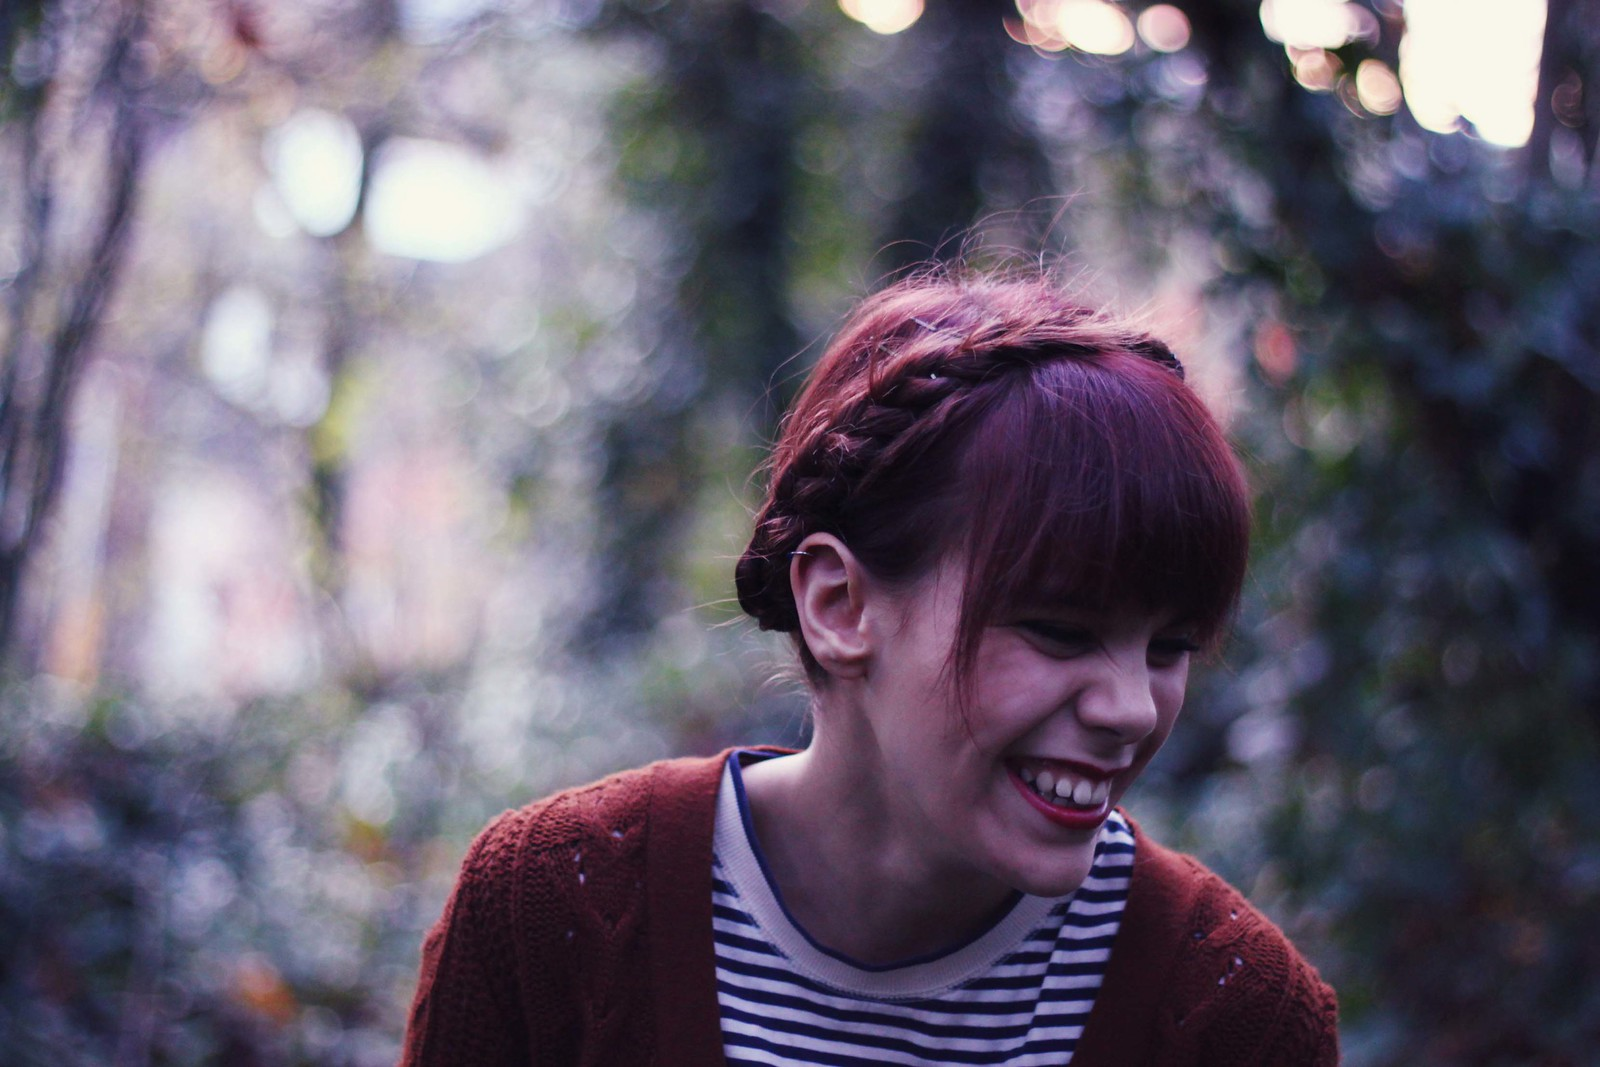 Frances McClain, candid, mid-laugh, 21. Februar 2012